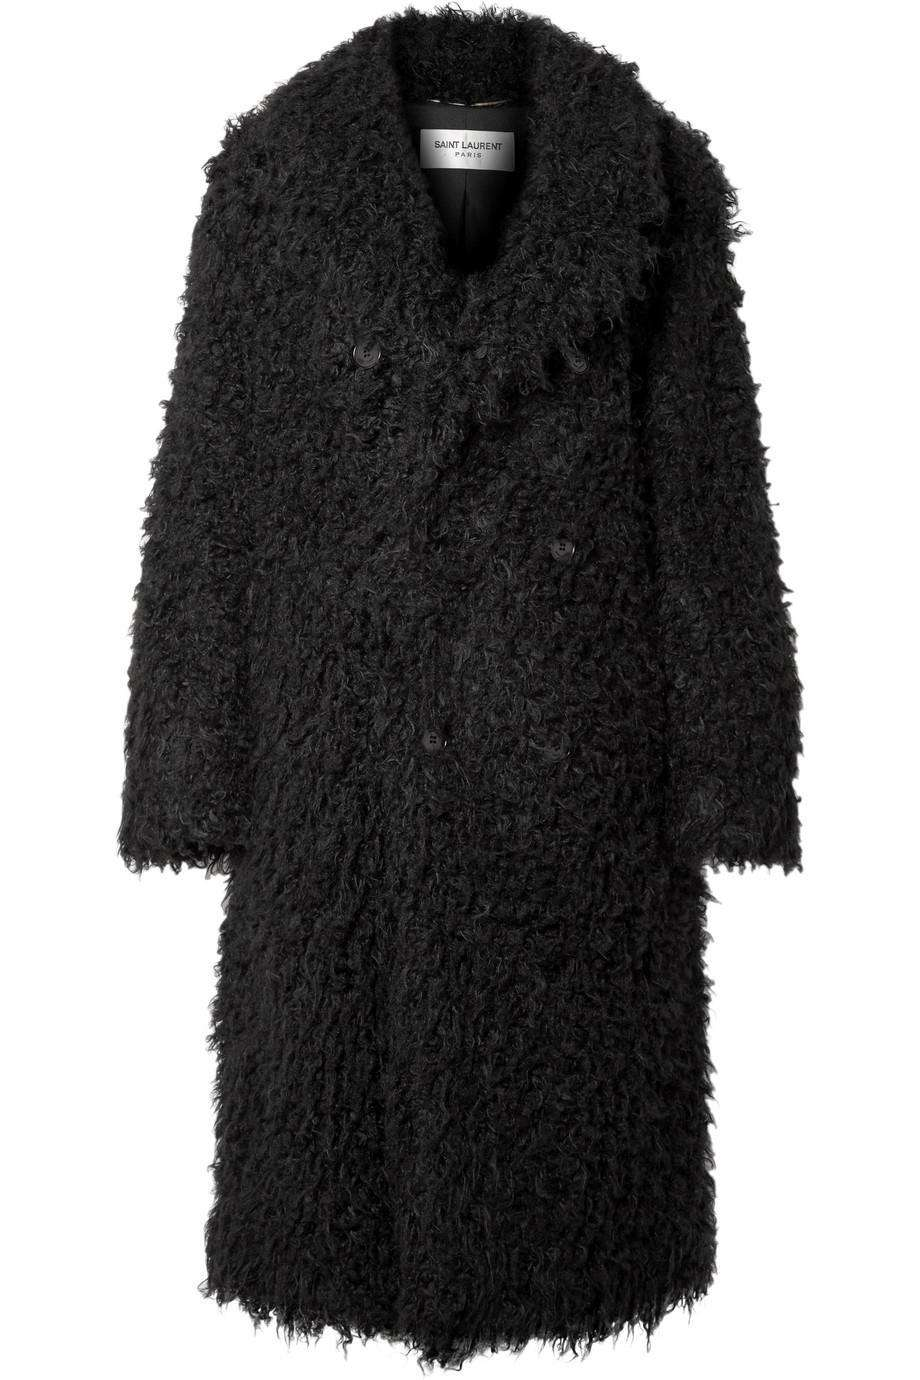 SAINT LAURENT OVERSIZED DOUBLE BREASTED FAUX SHEARLING COAT FR 42 UK 14